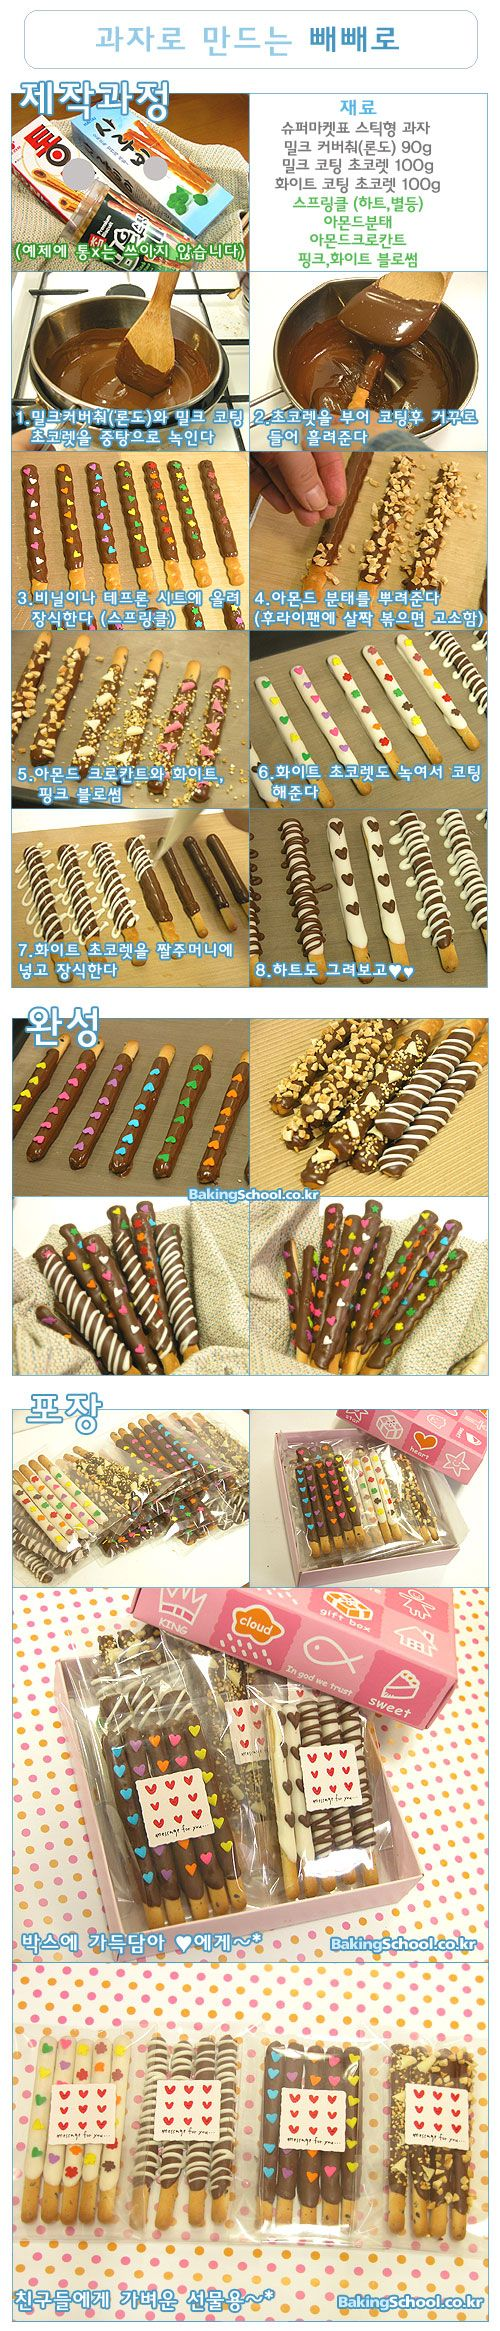 more pepero ideas